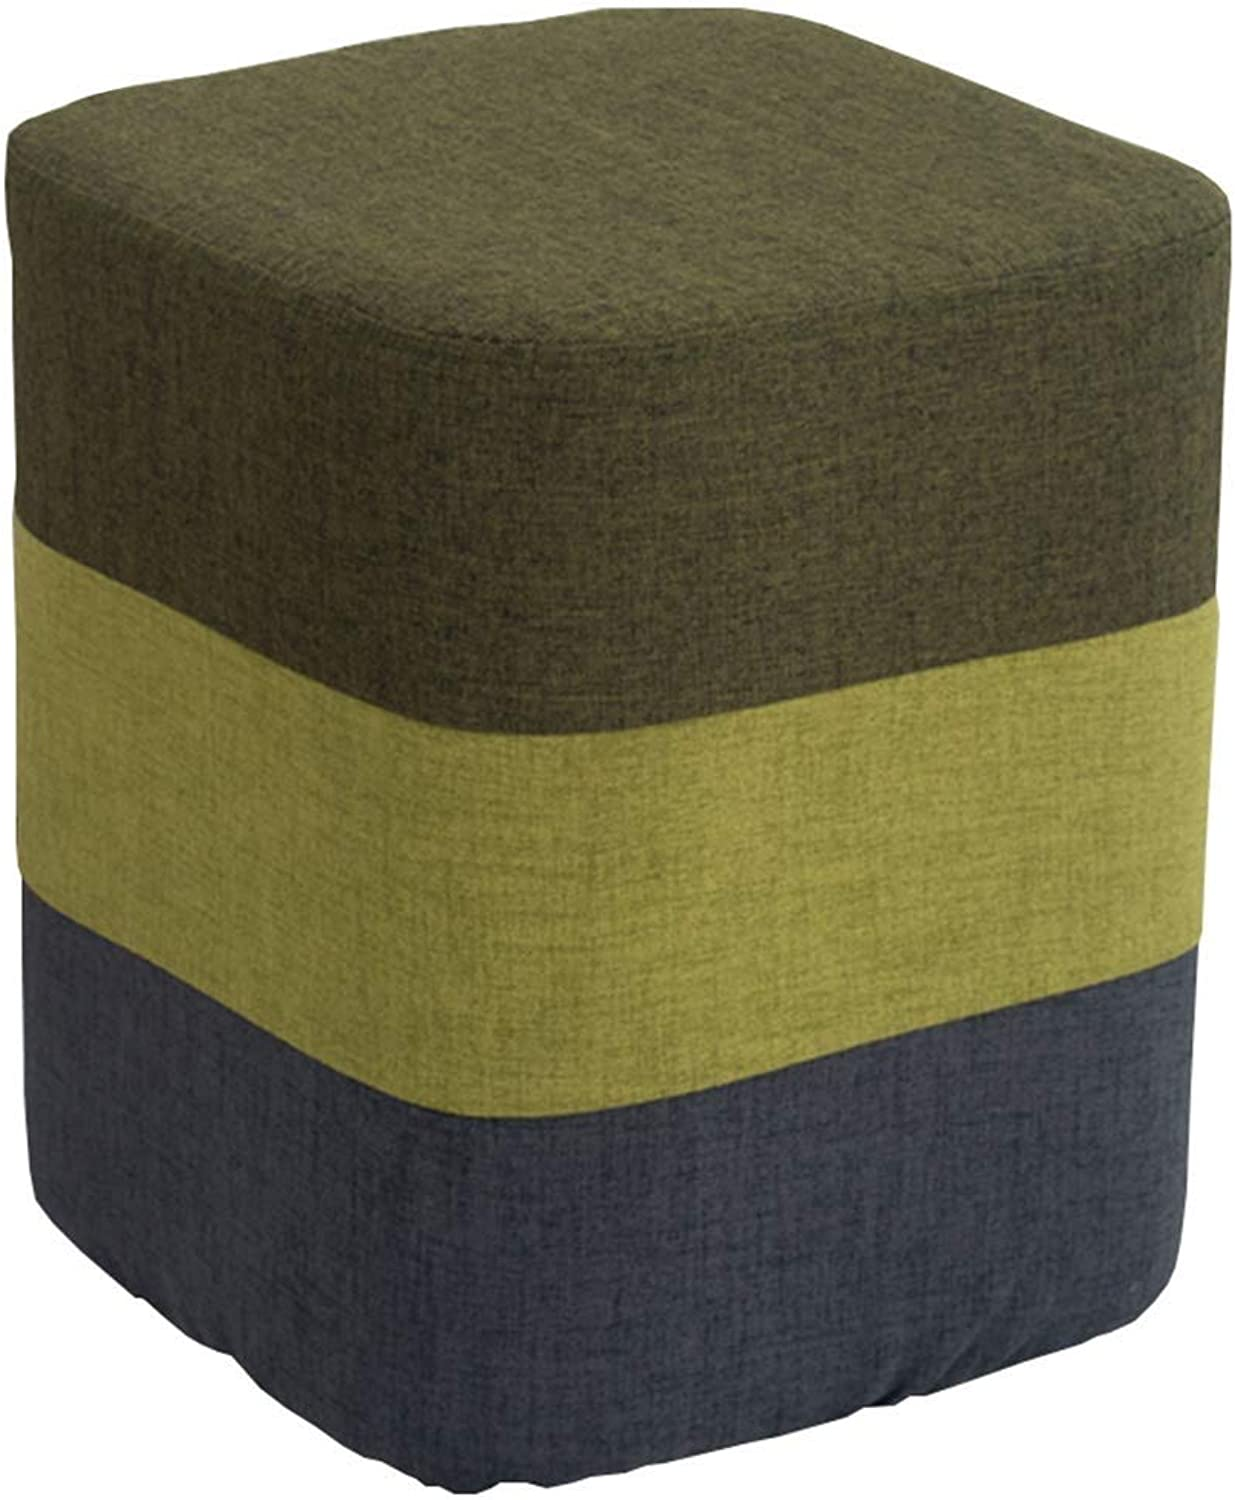 Stool Simple Fashion Home Multi-Function Sofa Stool Solid Wood Seat Leisure Stool Makeup Stool Multi-color Optional CONGMING (color   Dark-Green, Size   30  30  35cm)